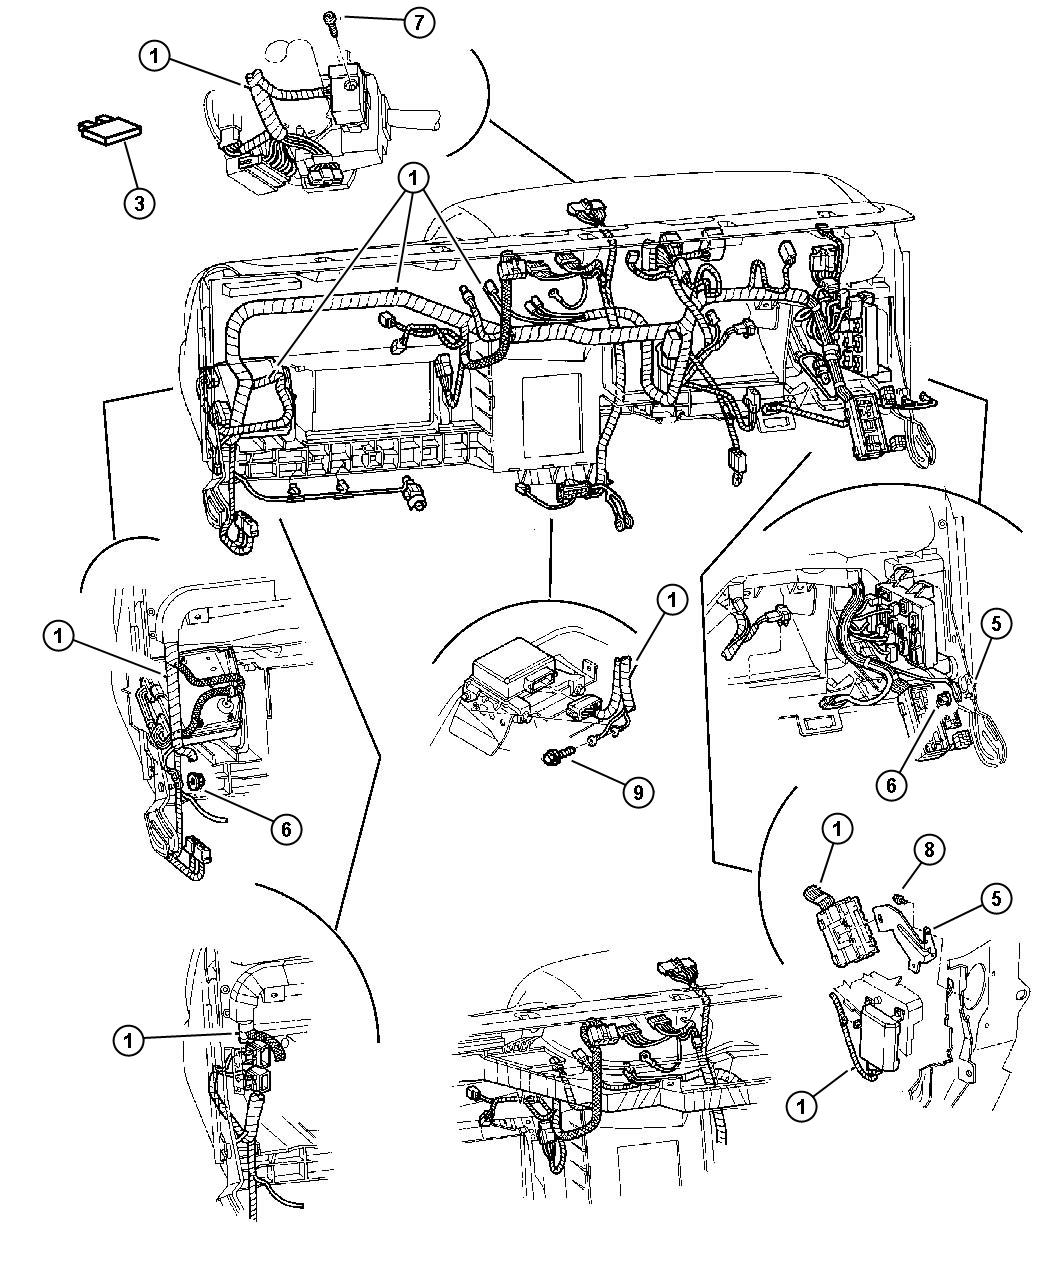 1999 dodge durango radio wiring diagram air ride suspension 2000 engine performance